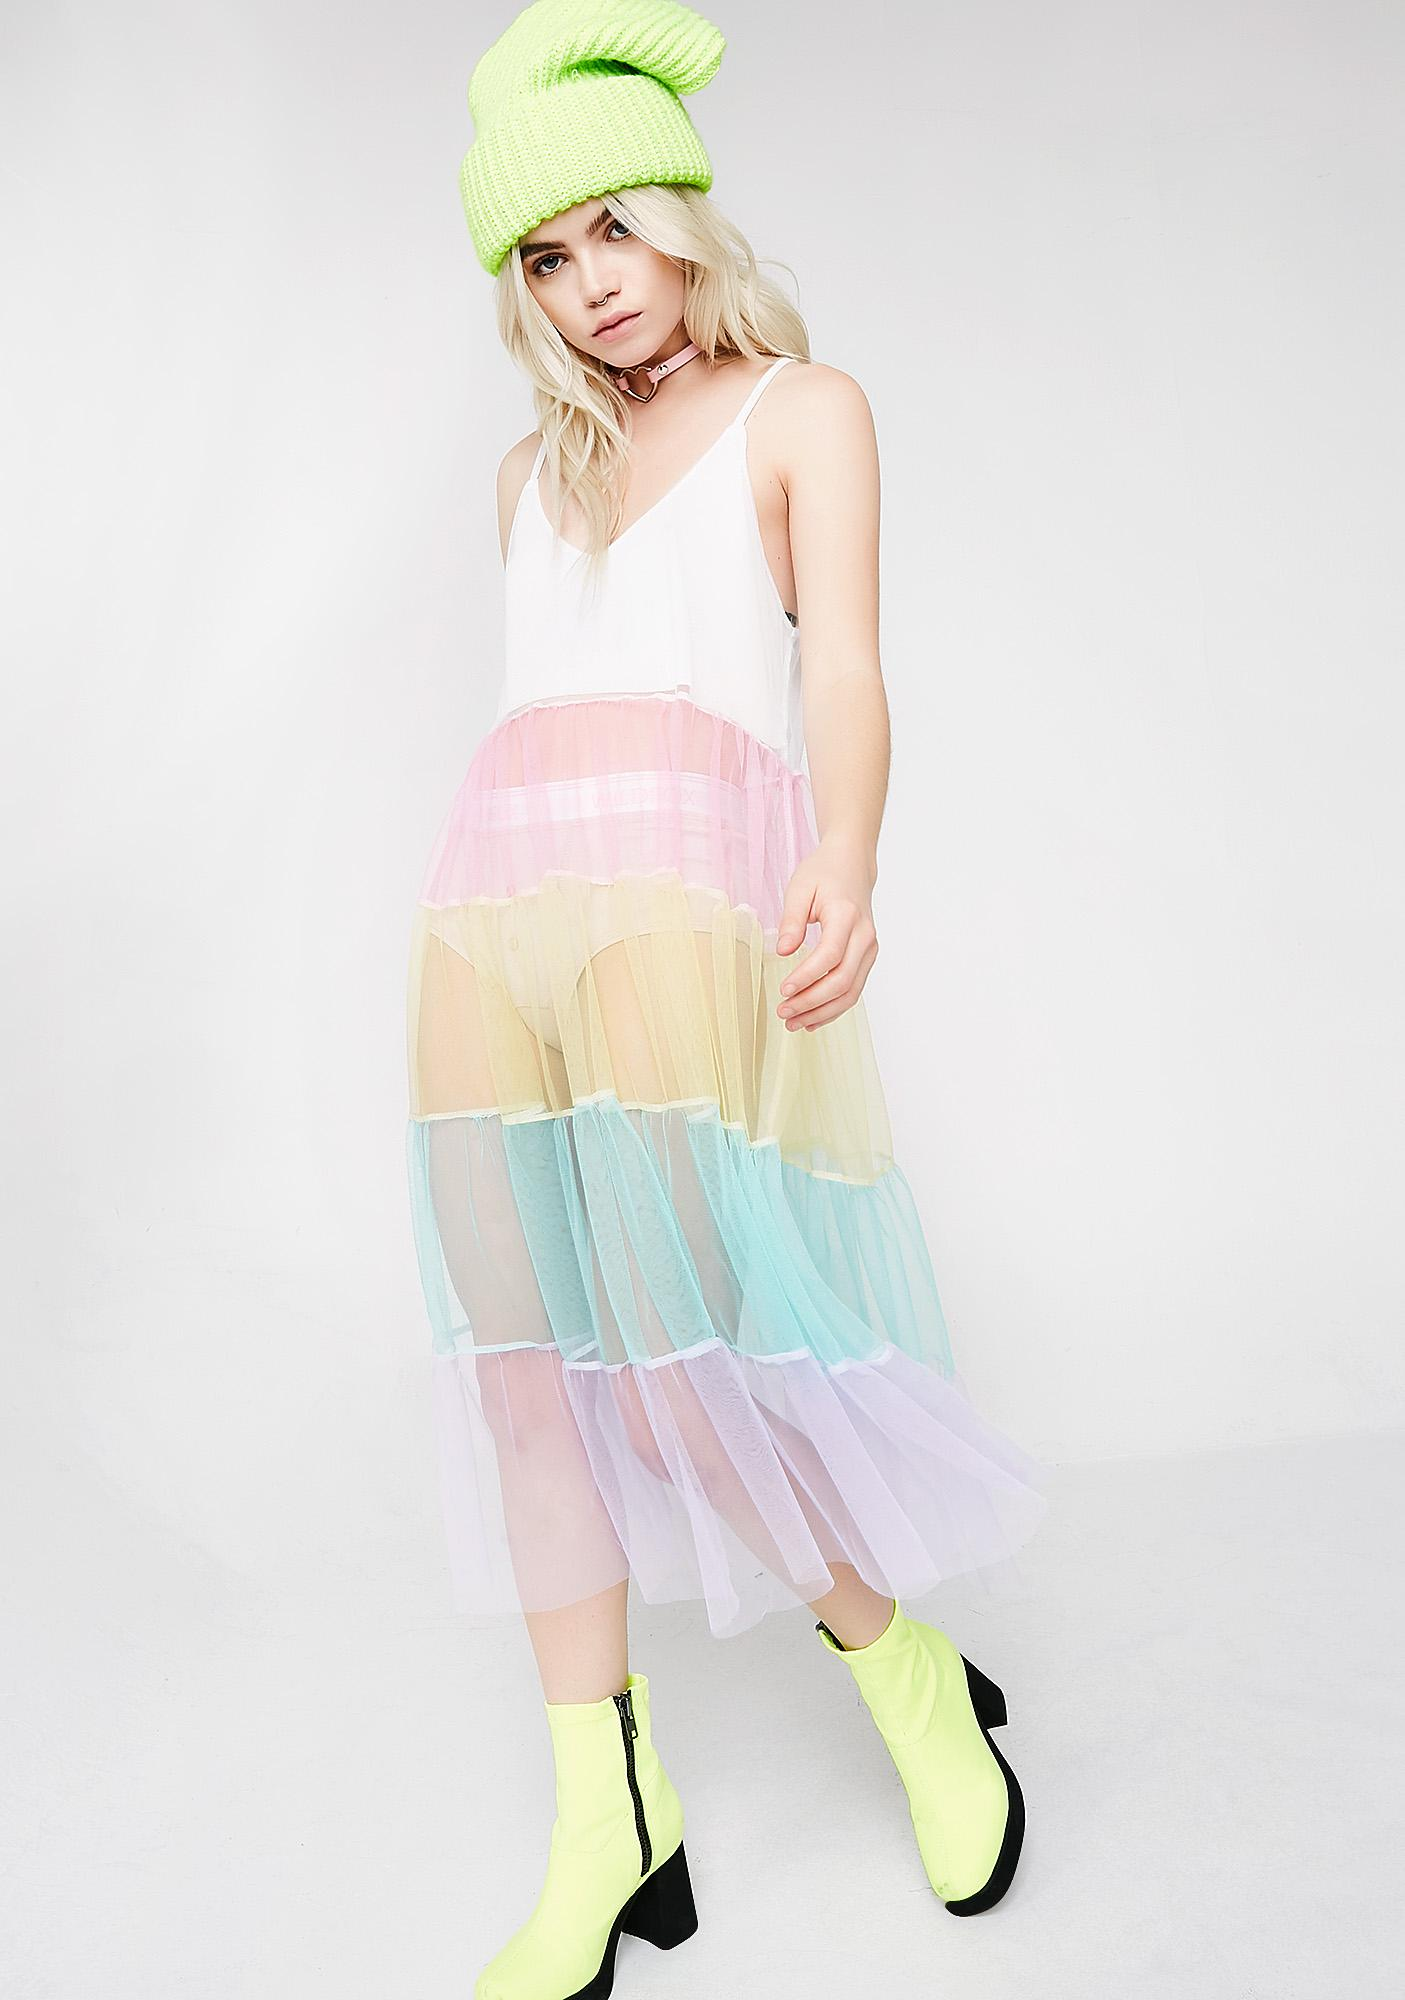 Fairy Visionz Rainbow Dress